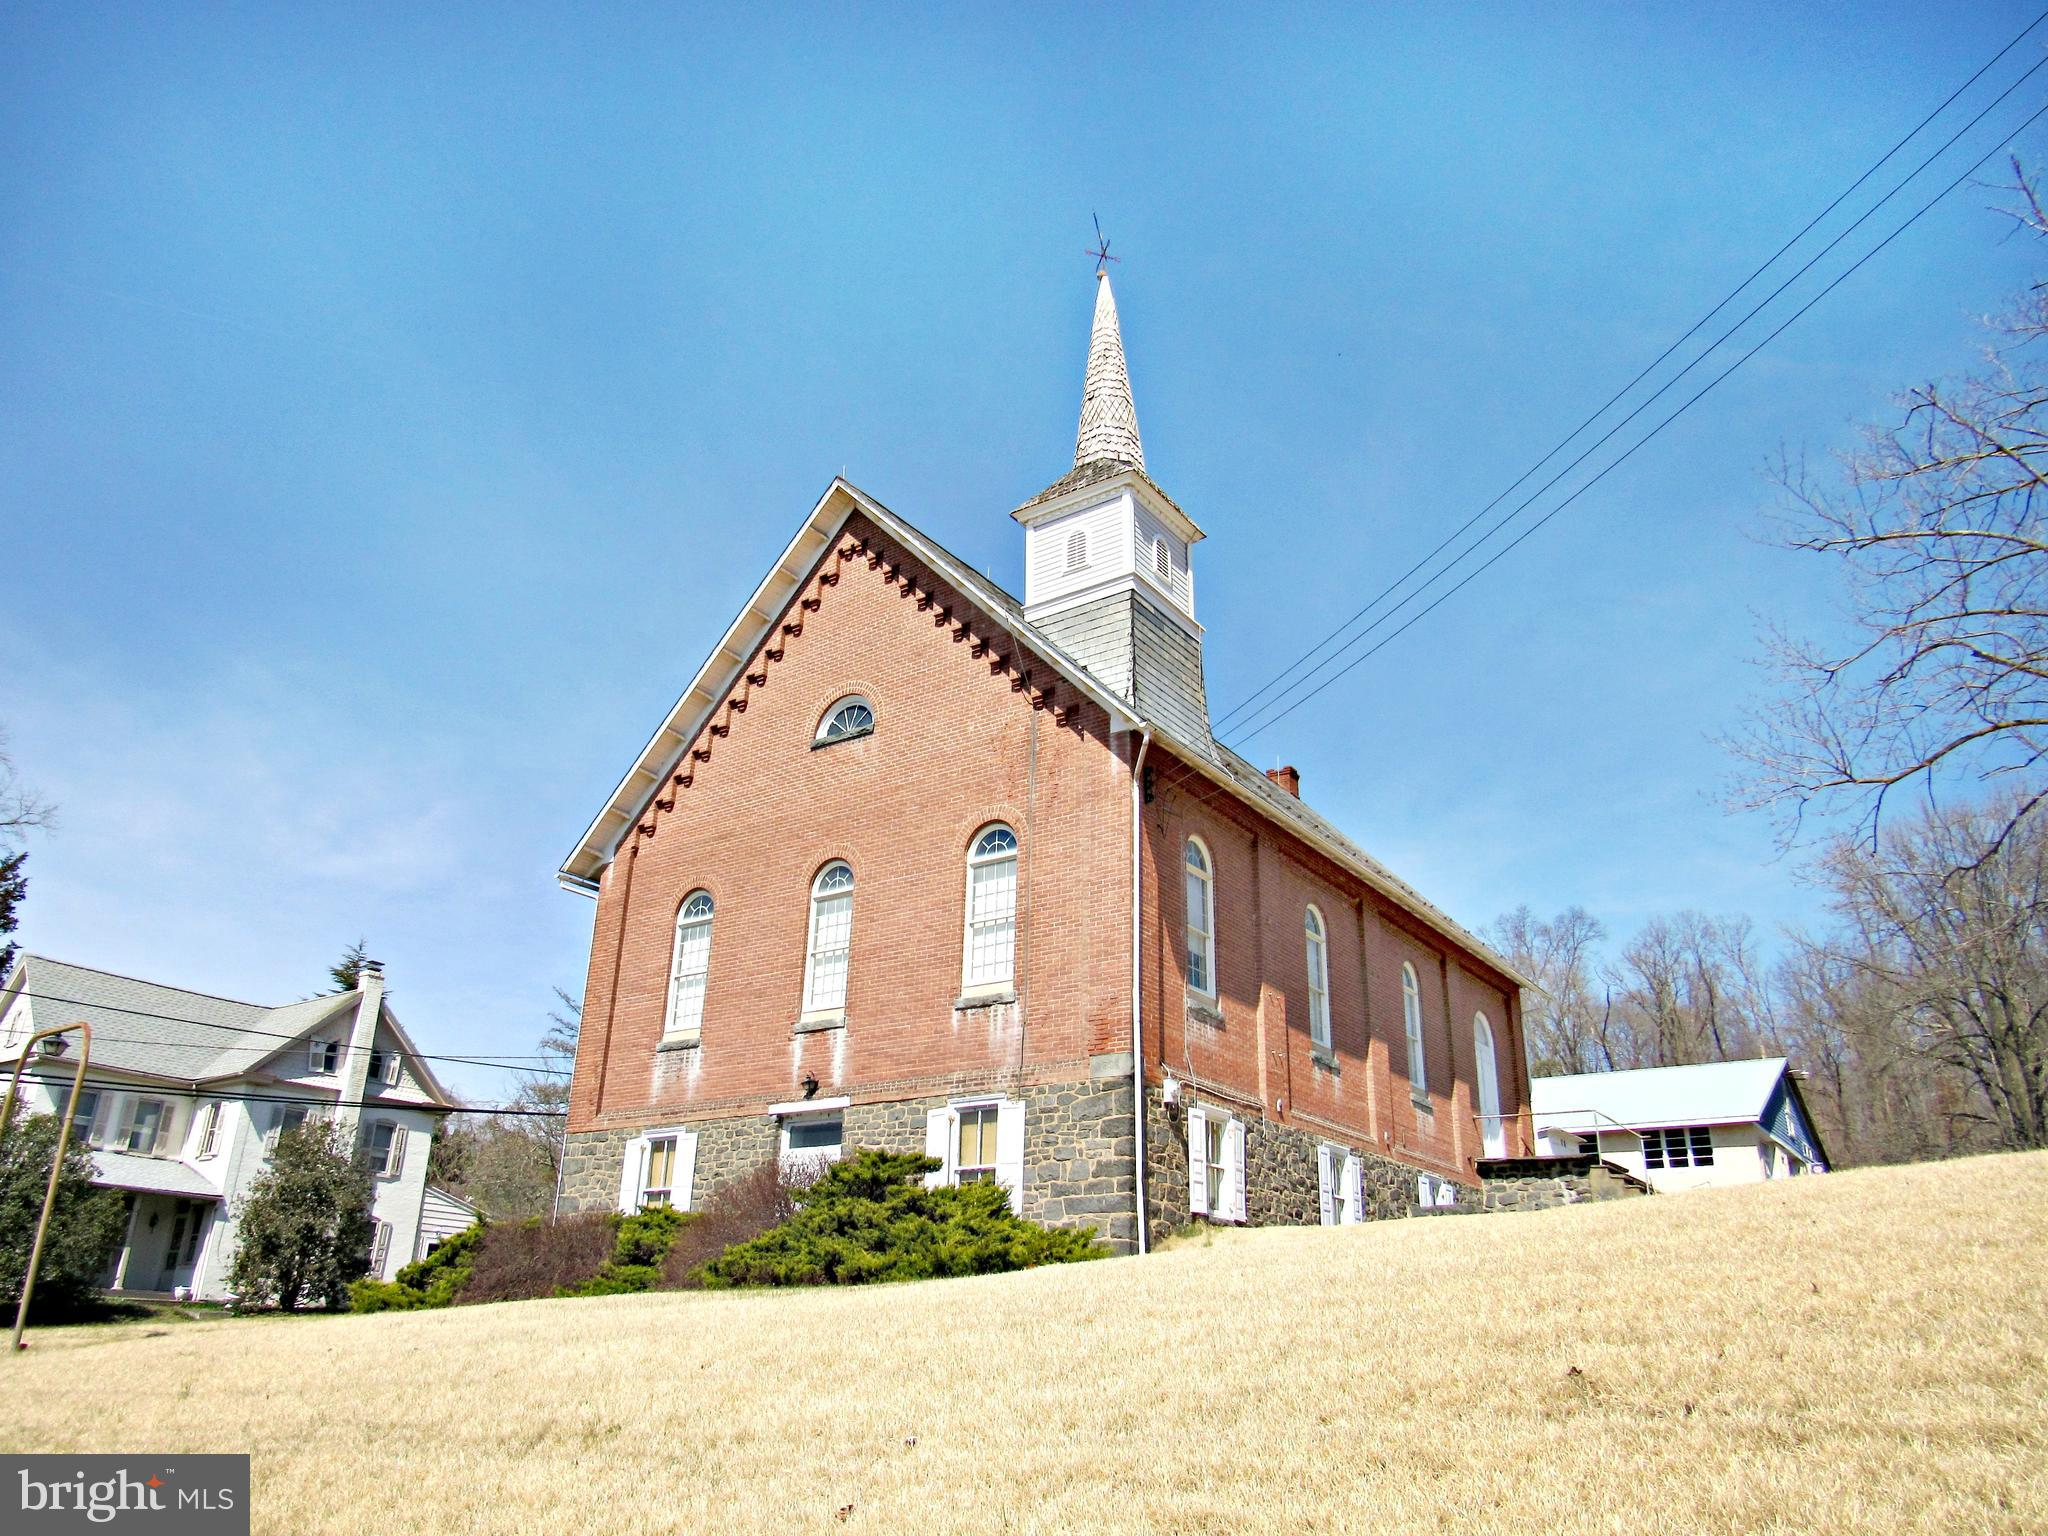 Wonderfully maintained chapel built in 1898. Upper level is a worship area that is 34' x 45' plus large stage. Current seating for approximately 175. Lower level meeting room is 32' x 34'. Lower level also has entrance foyer with two stairways heading to upstairs, heater room and storage room. Building has heat, but no interior plumbing. Use your imagination. Many possible uses. Current zoning Borough Residential which does permit professional office and some commercial use. Call listing agent for details.